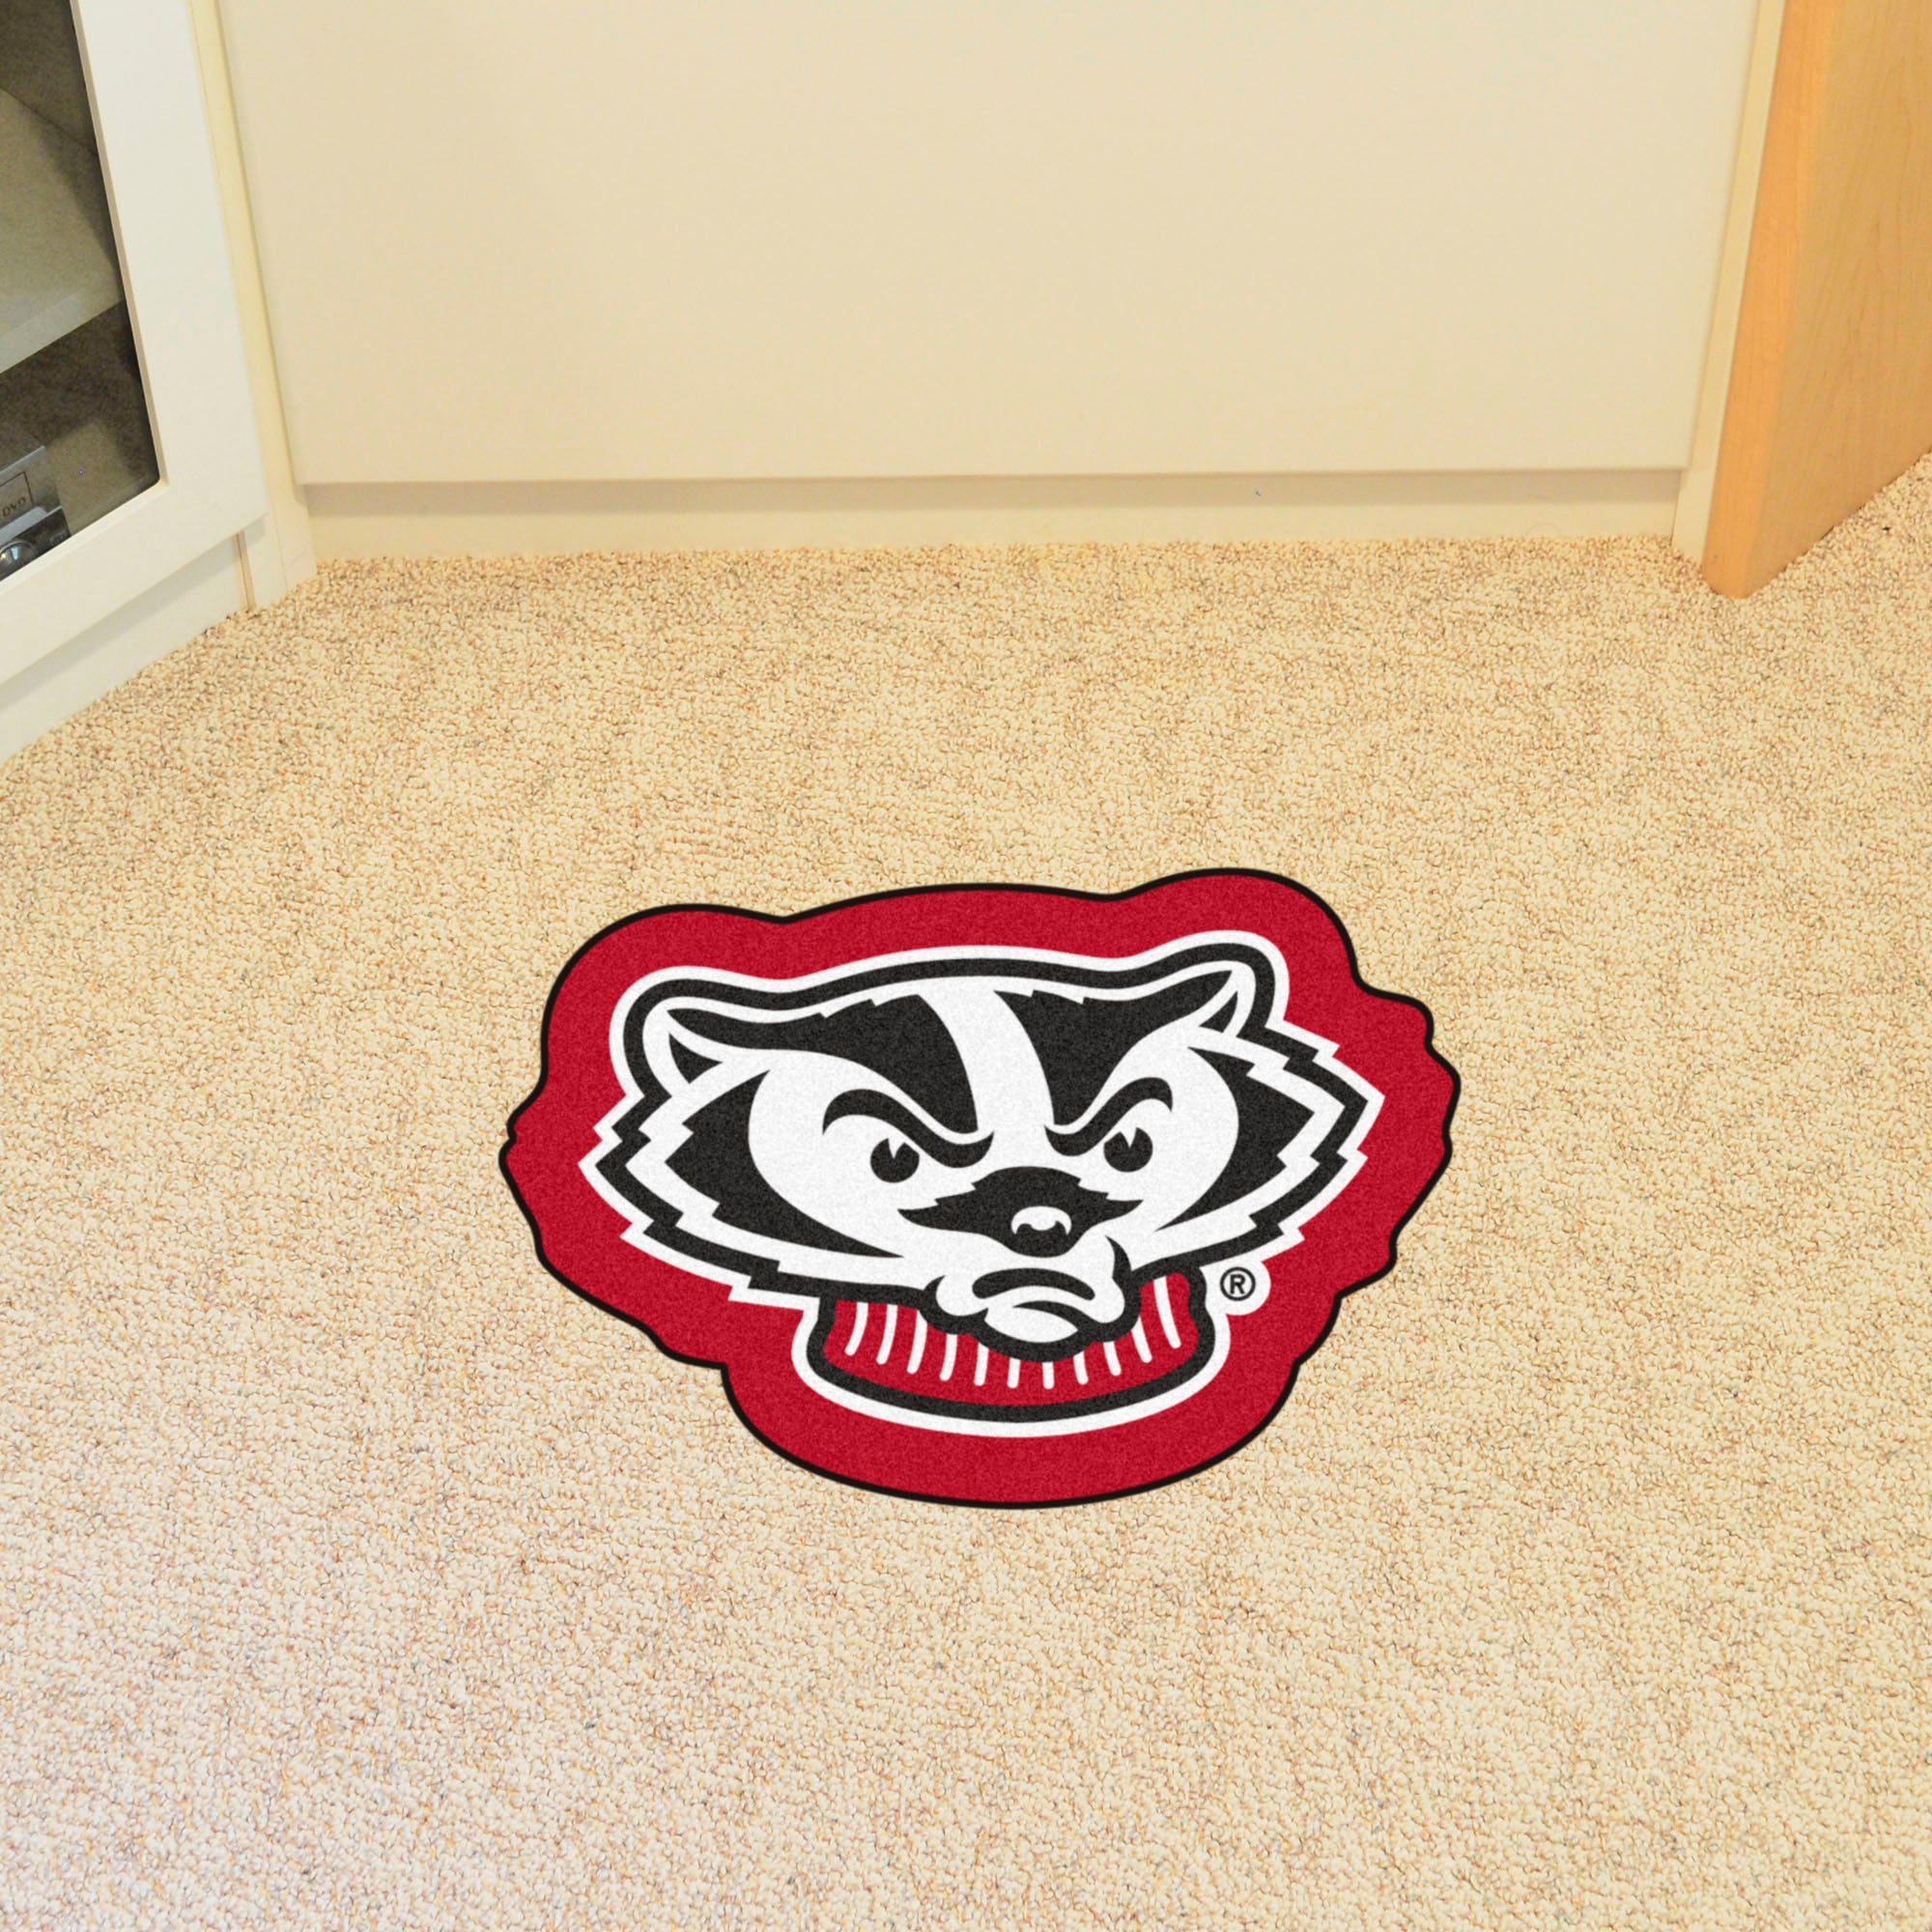 University of Wisconsin Mascot Mat